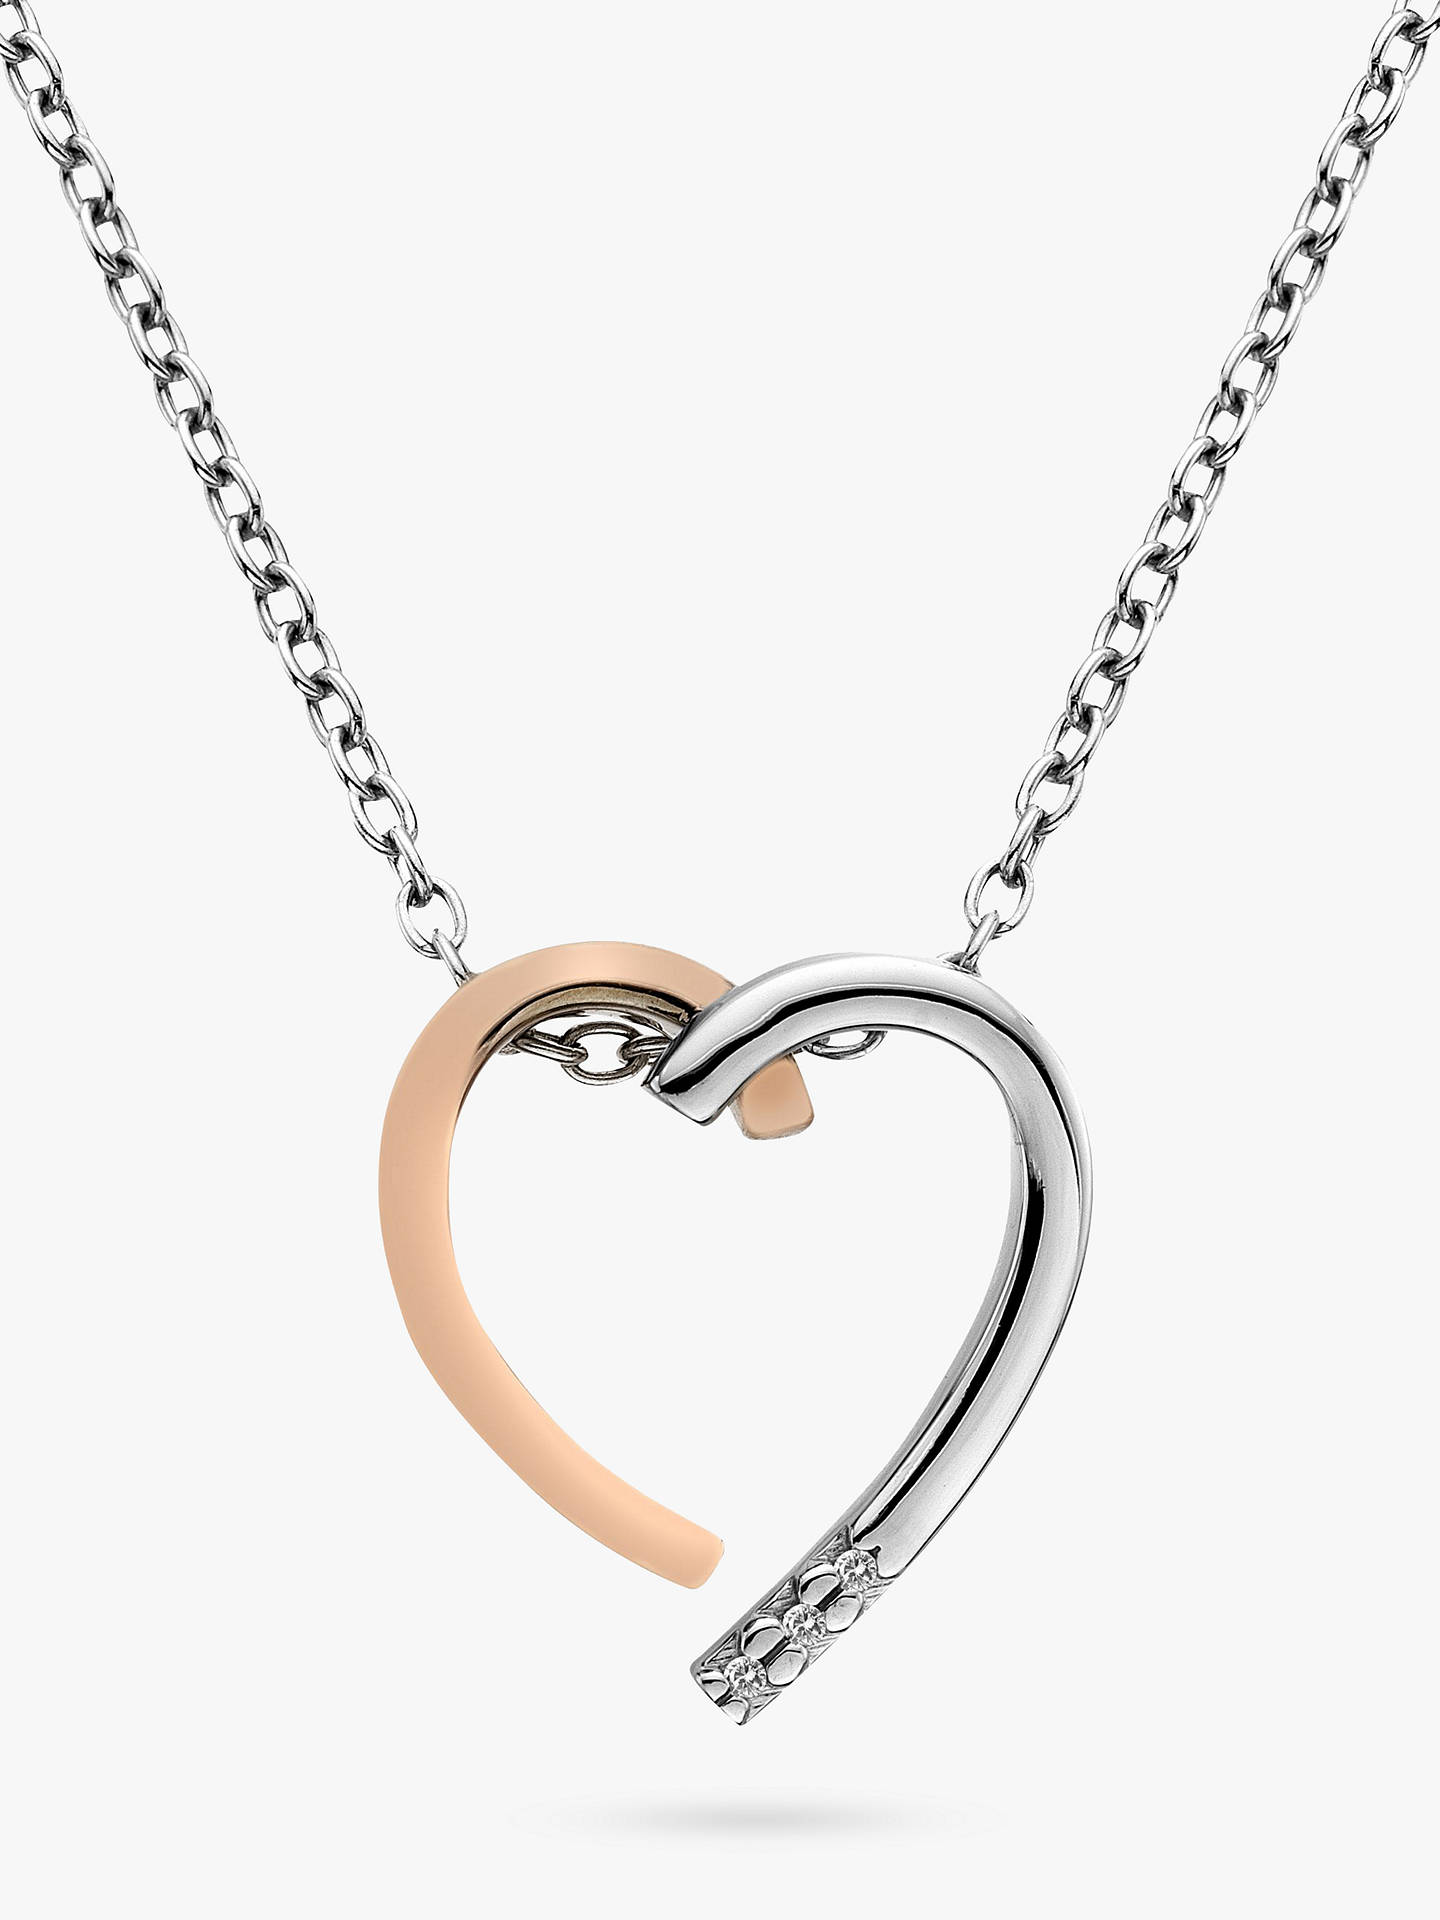 a5f888a7fb387a Hot Diamonds Large Heart Pendant Necklace Silver Rose Gold At John. Kit  Heath Personalised Desire Treasured Love Affair ...